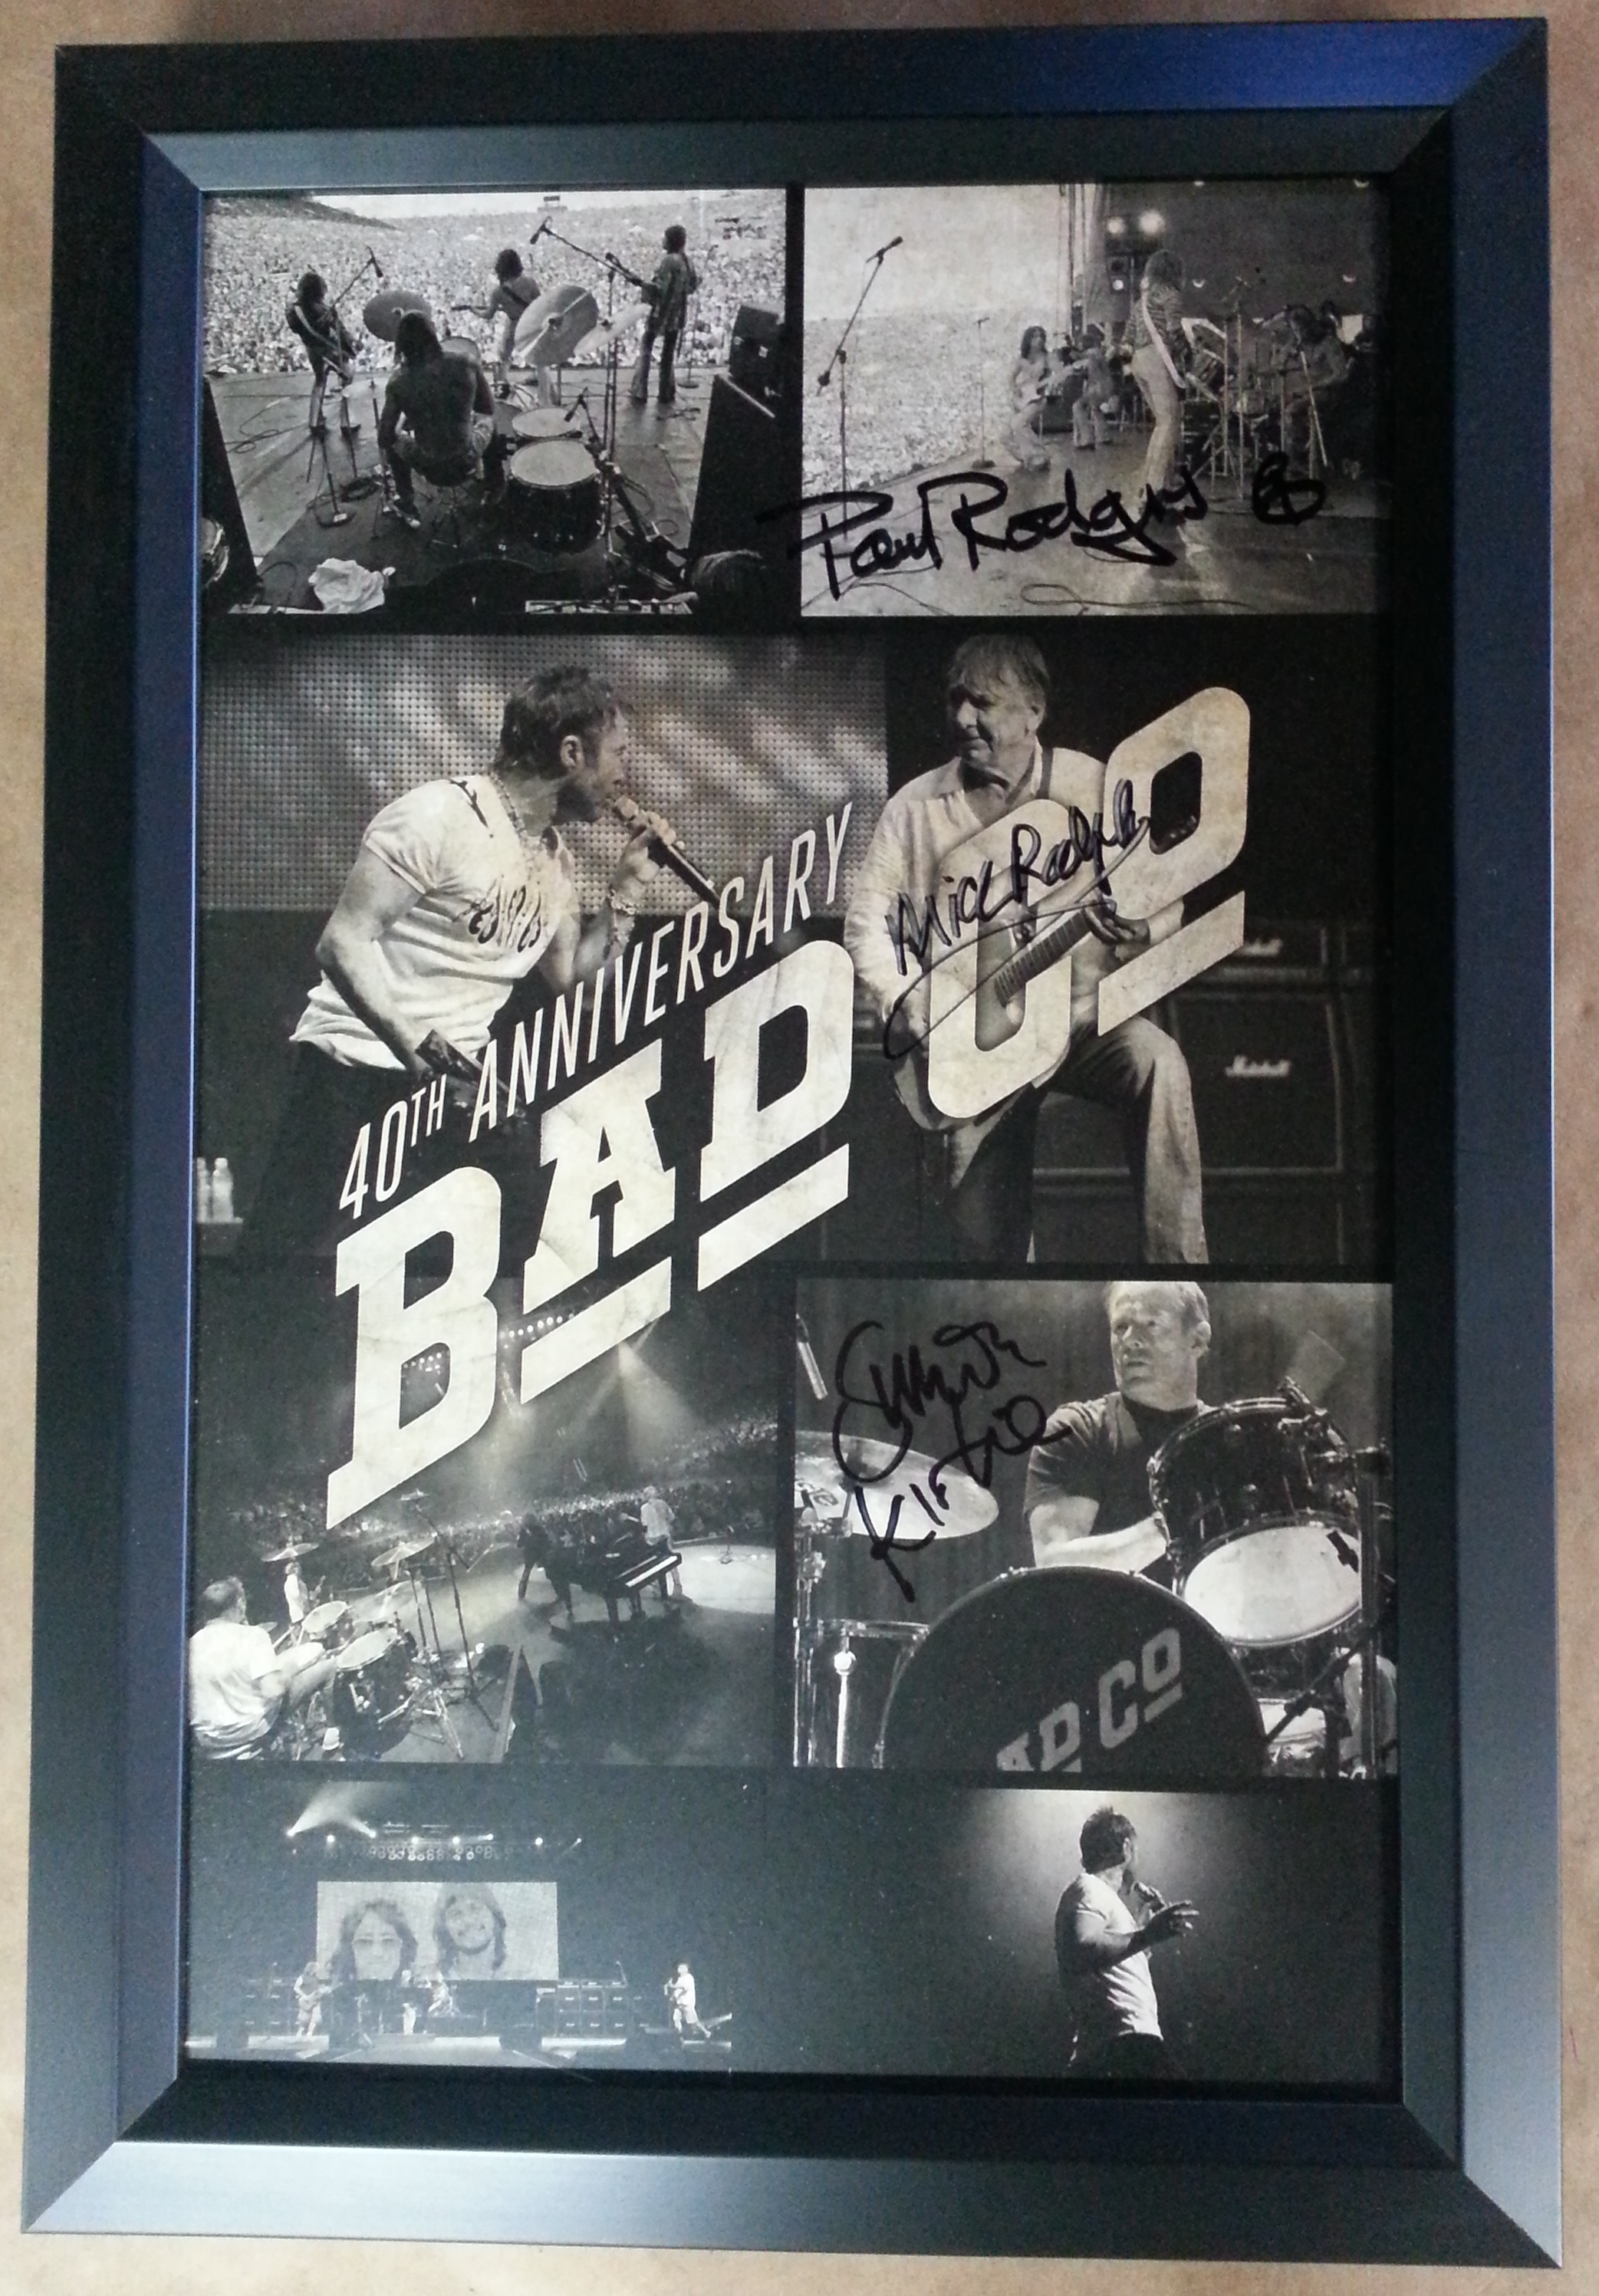 framed bad company poster autographed columbia frame shop. Black Bedroom Furniture Sets. Home Design Ideas